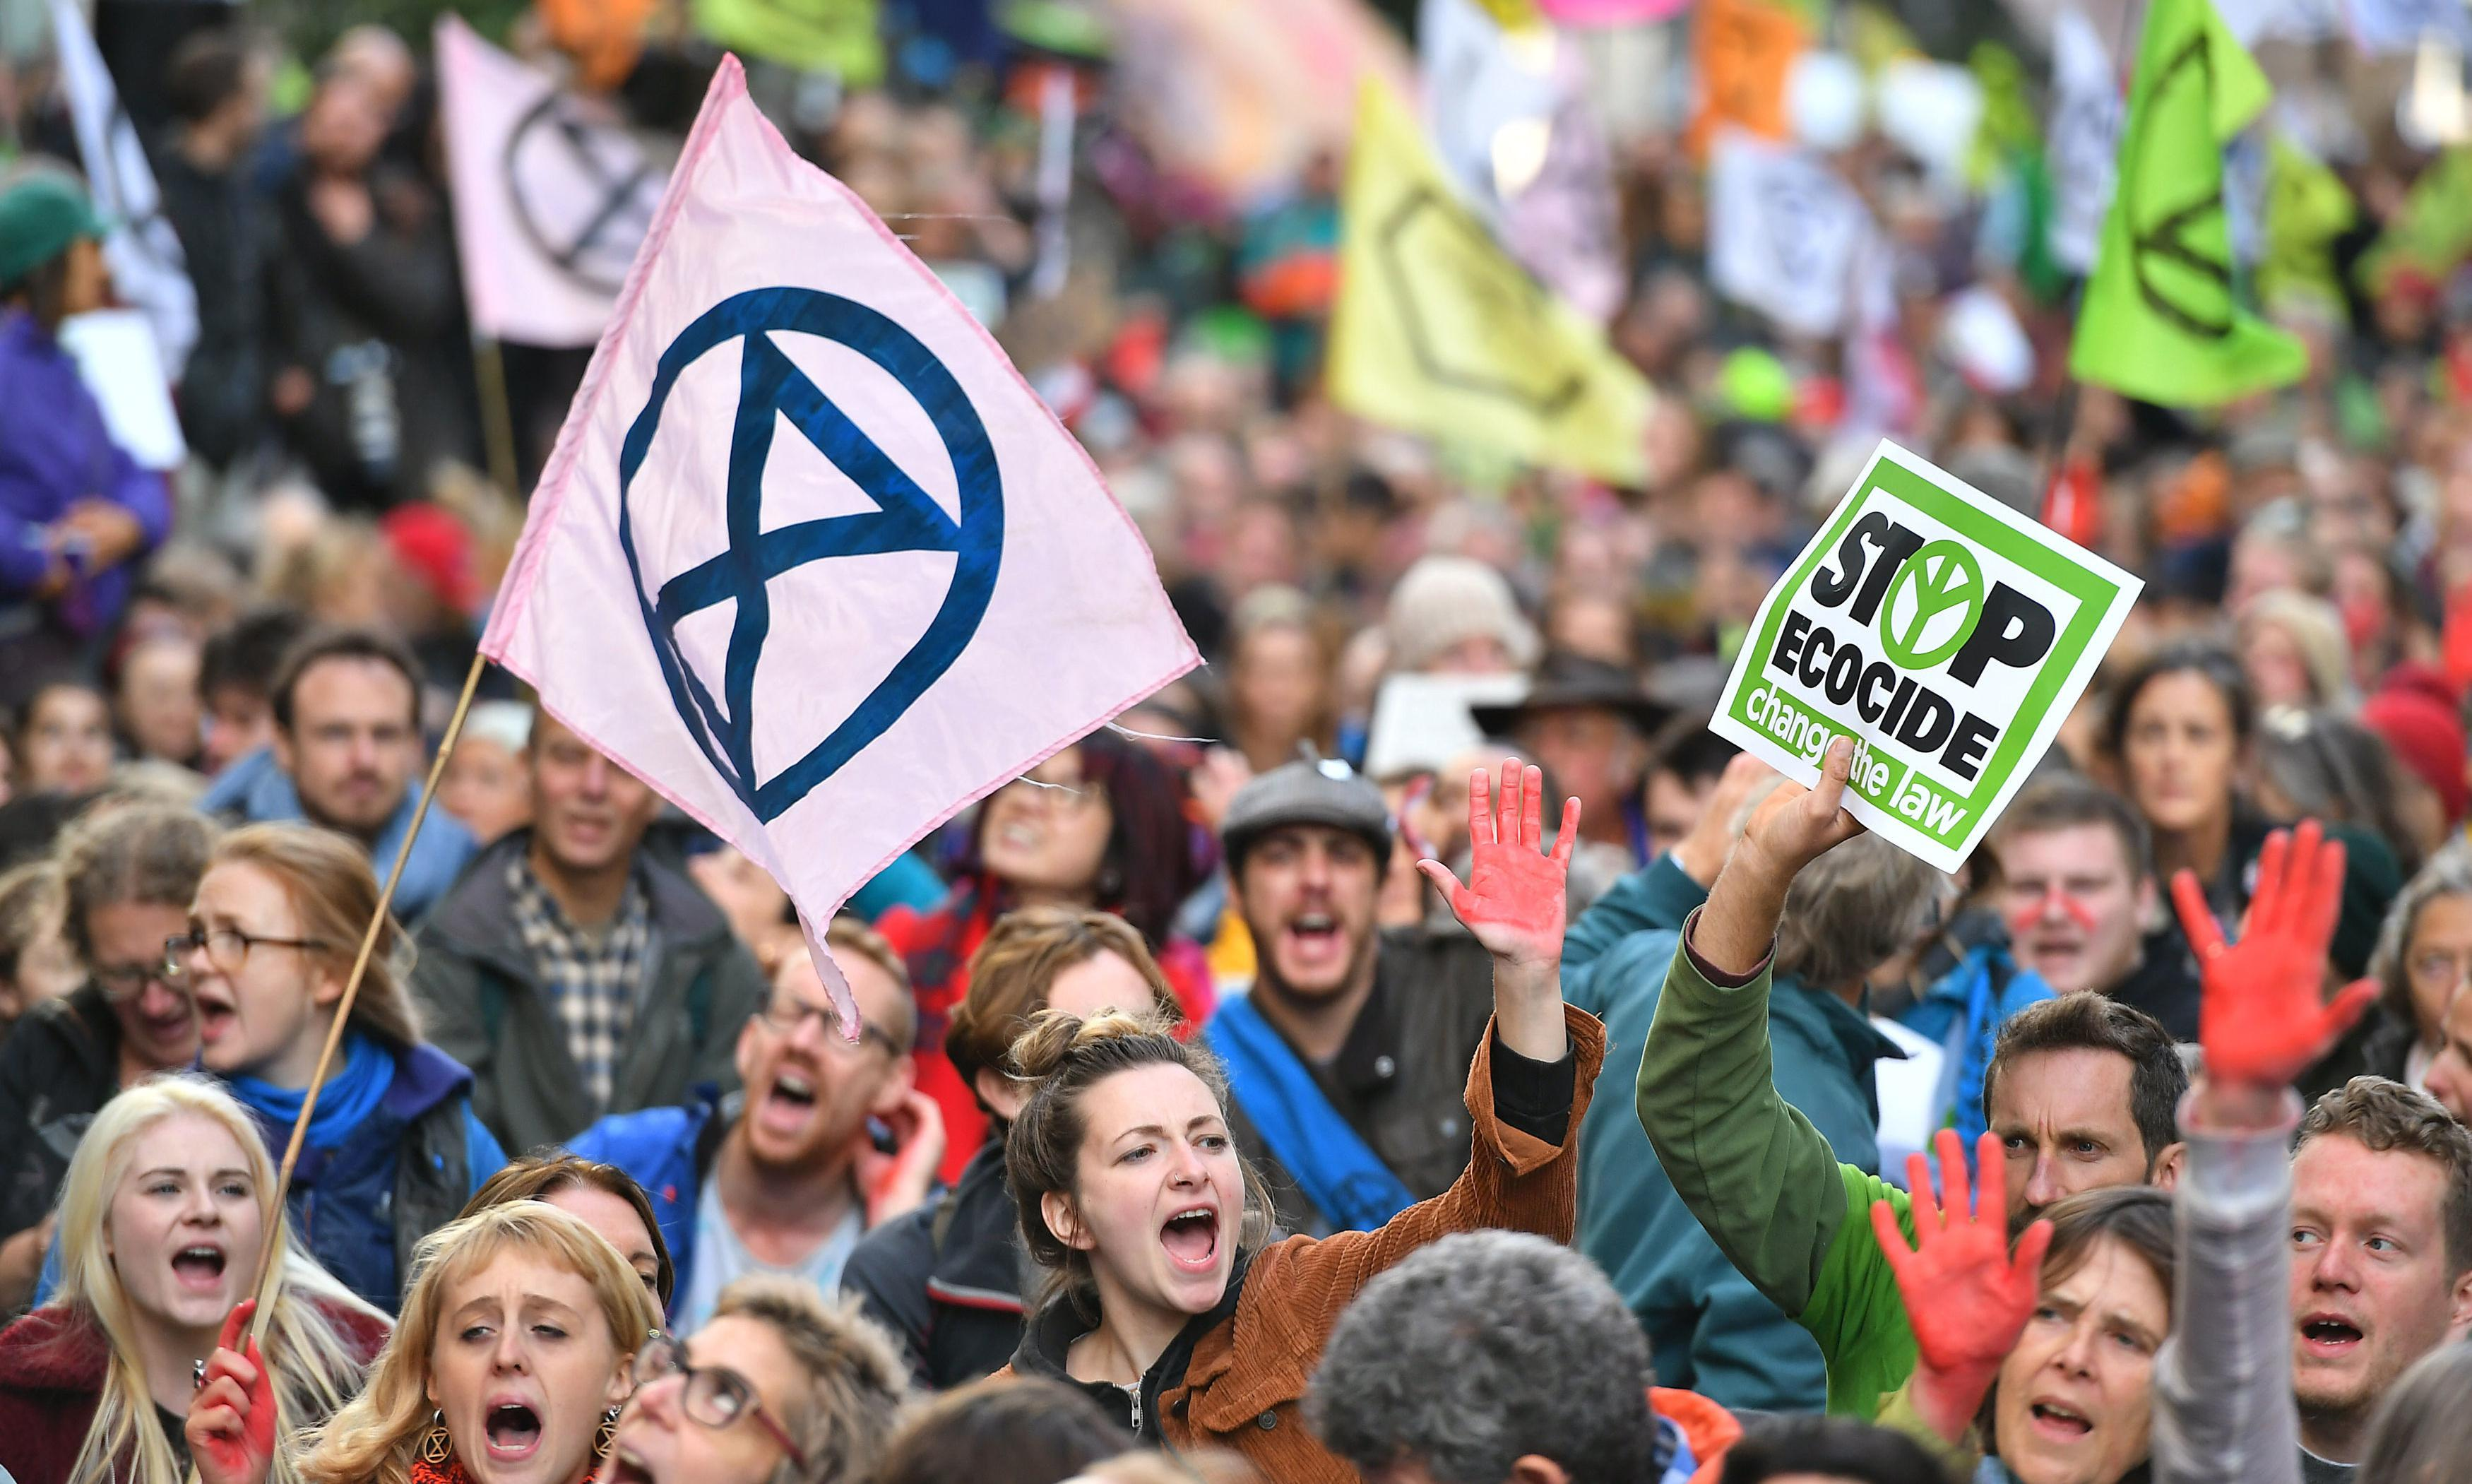 When I look at Extinction Rebellion, all I see is white faces. That has to change